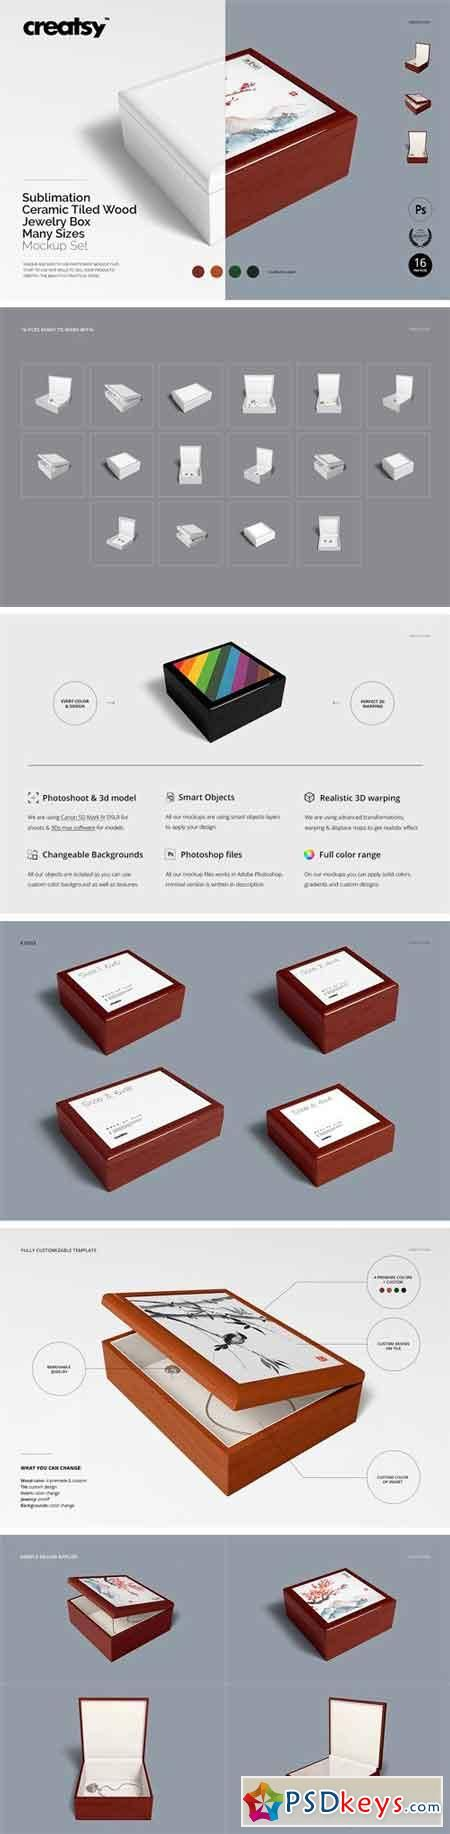 Download Tiled Wood Jewelry Box Mockup Set 2249144 Wood Jewelry Box Wood Jewellery Wood Tile